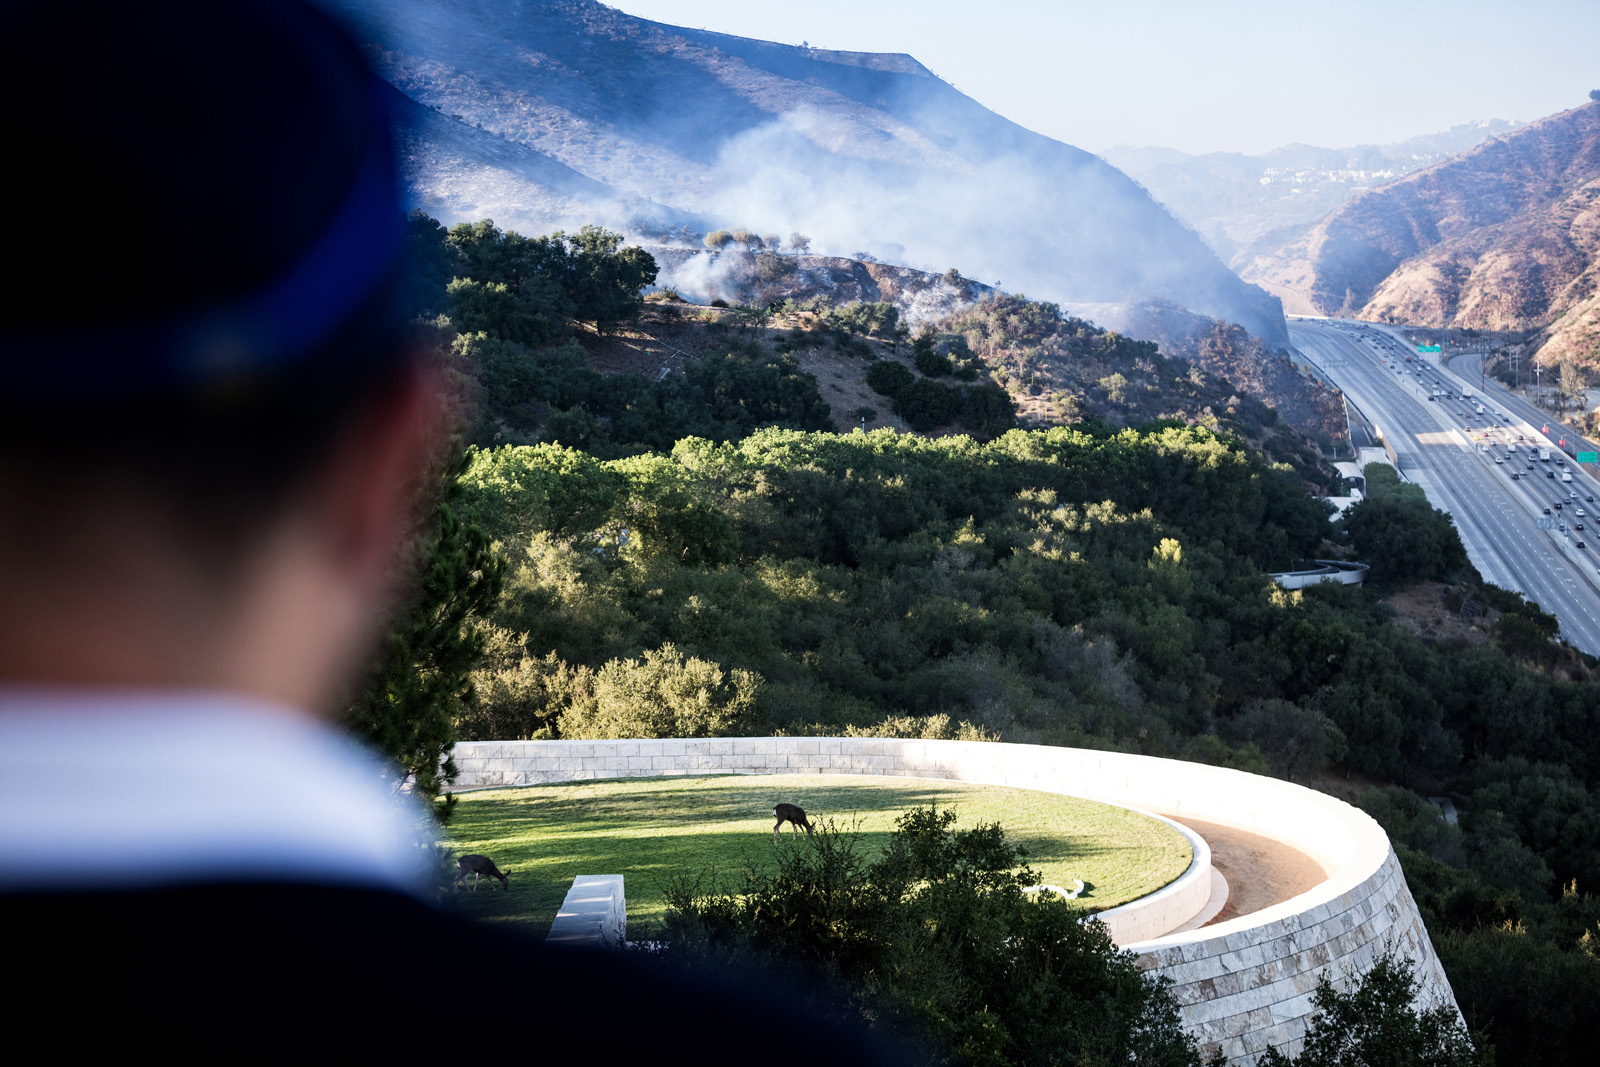 Late afternoon Monday, a Getty security staffer watches the final smoke near the Sepulveda pass. In the middle distance, deer take refuge on the Getty Center helipad.